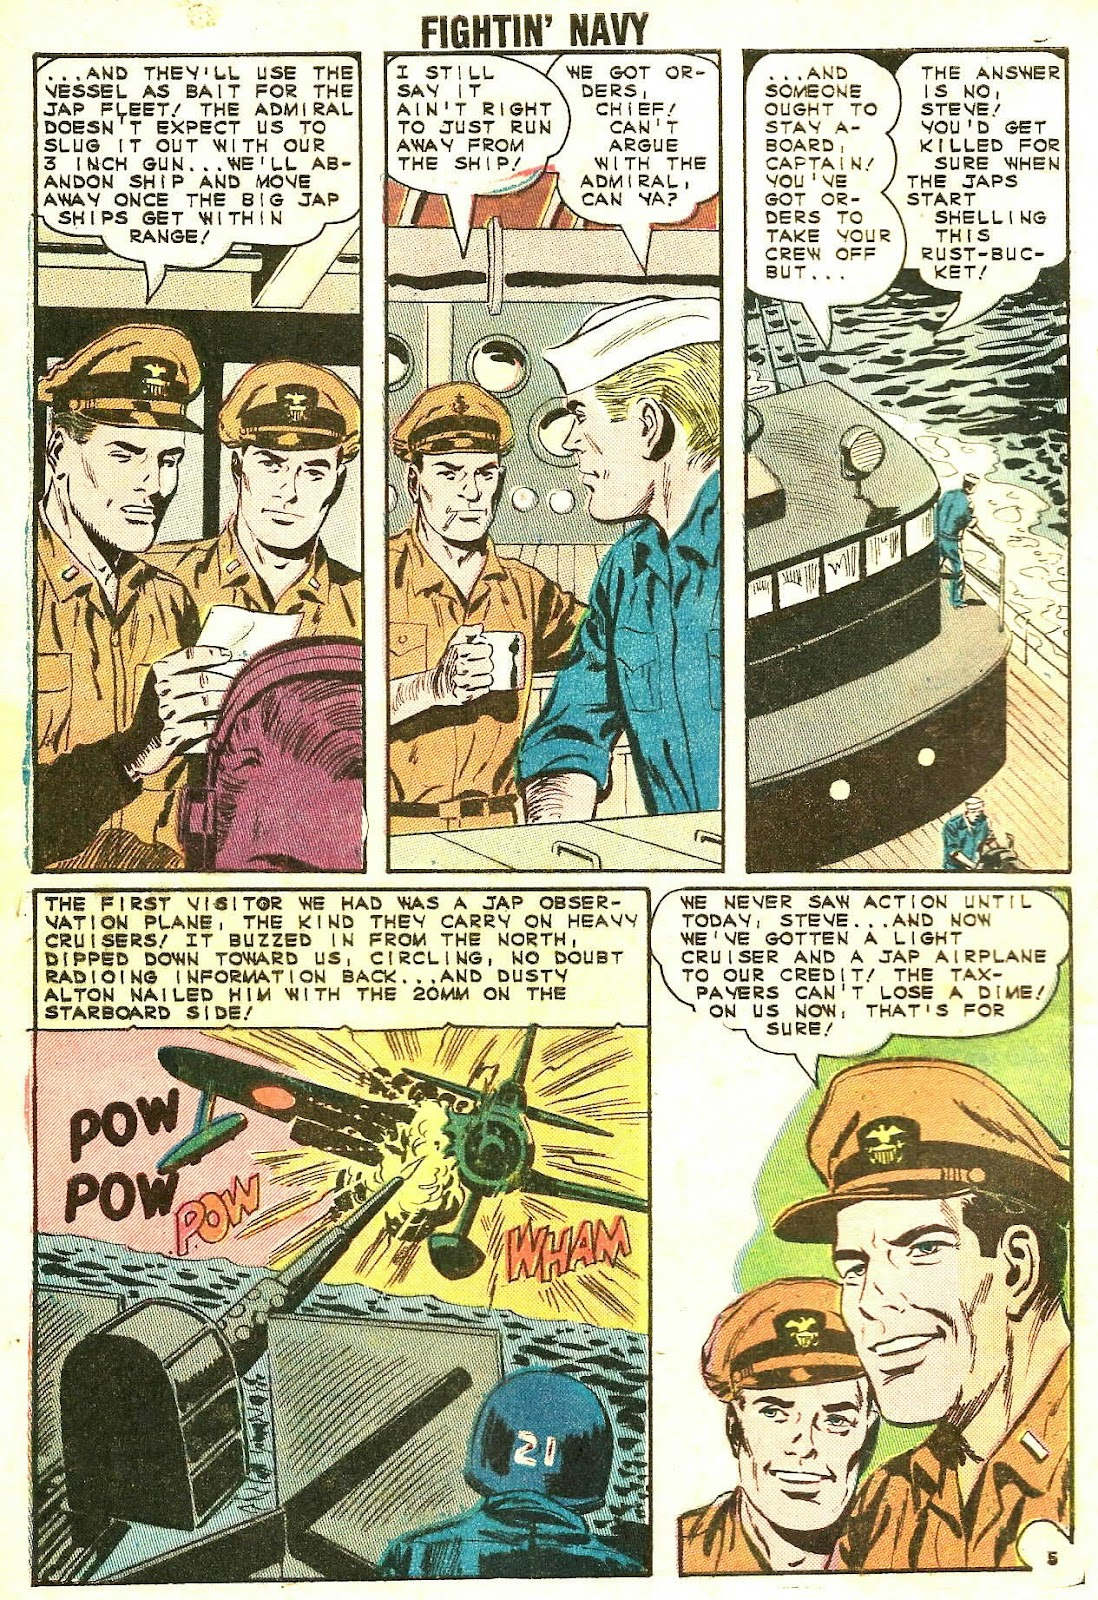 Read online Fightin' Navy comic -  Issue #118 - 8